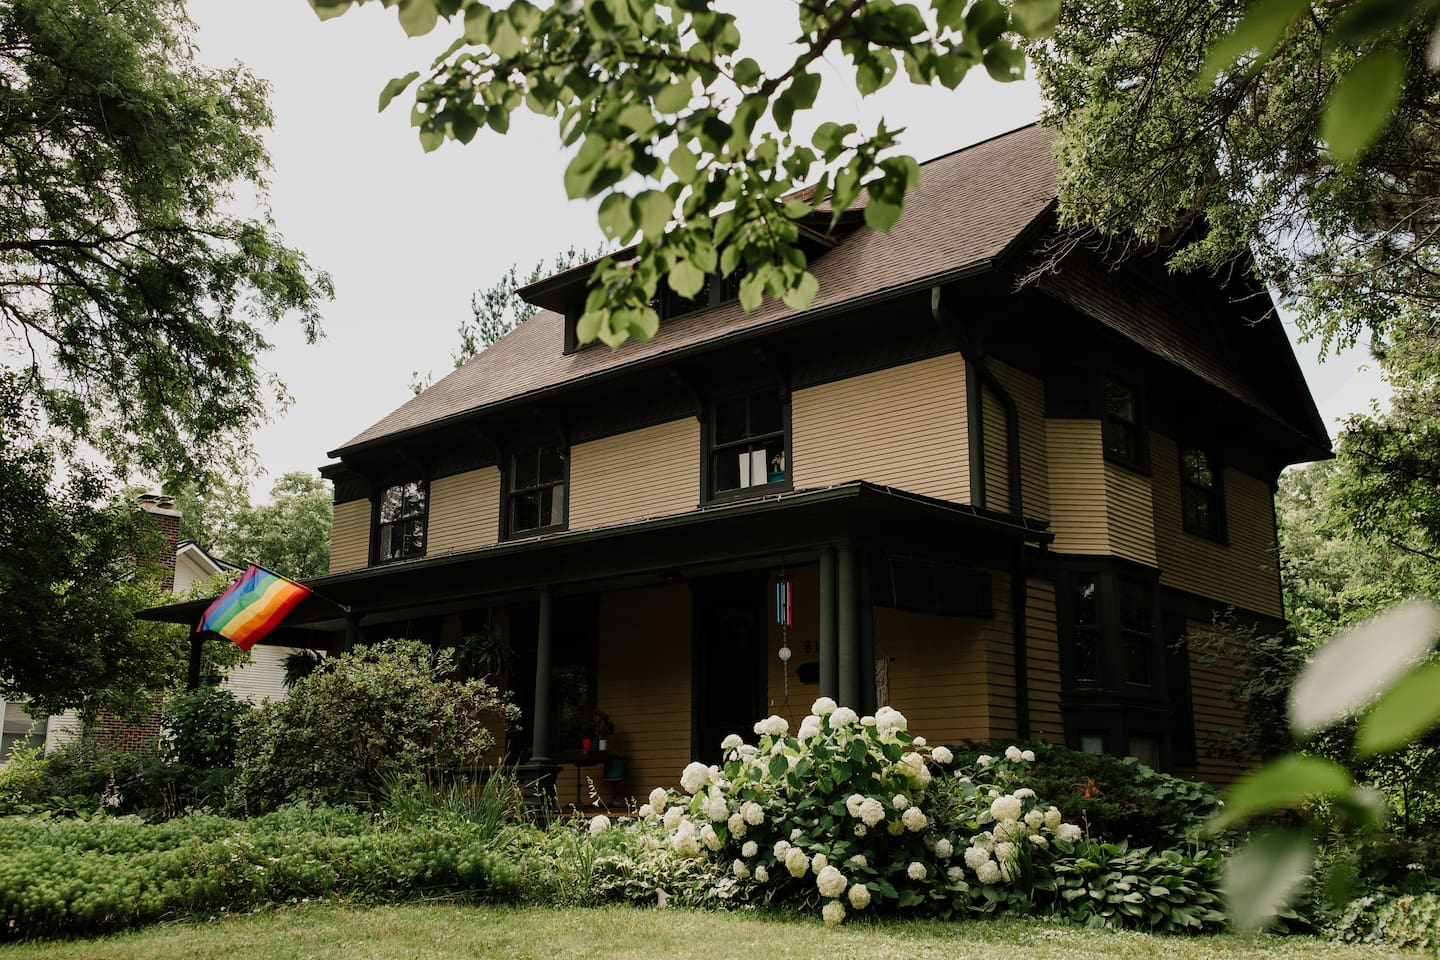 Iowa's Queerest B&B in America's Coolest Small Town. Thistle's Summit is a historic home with modern amenities and ideology, nestled in dreamy Mount Vernon, Iowa.